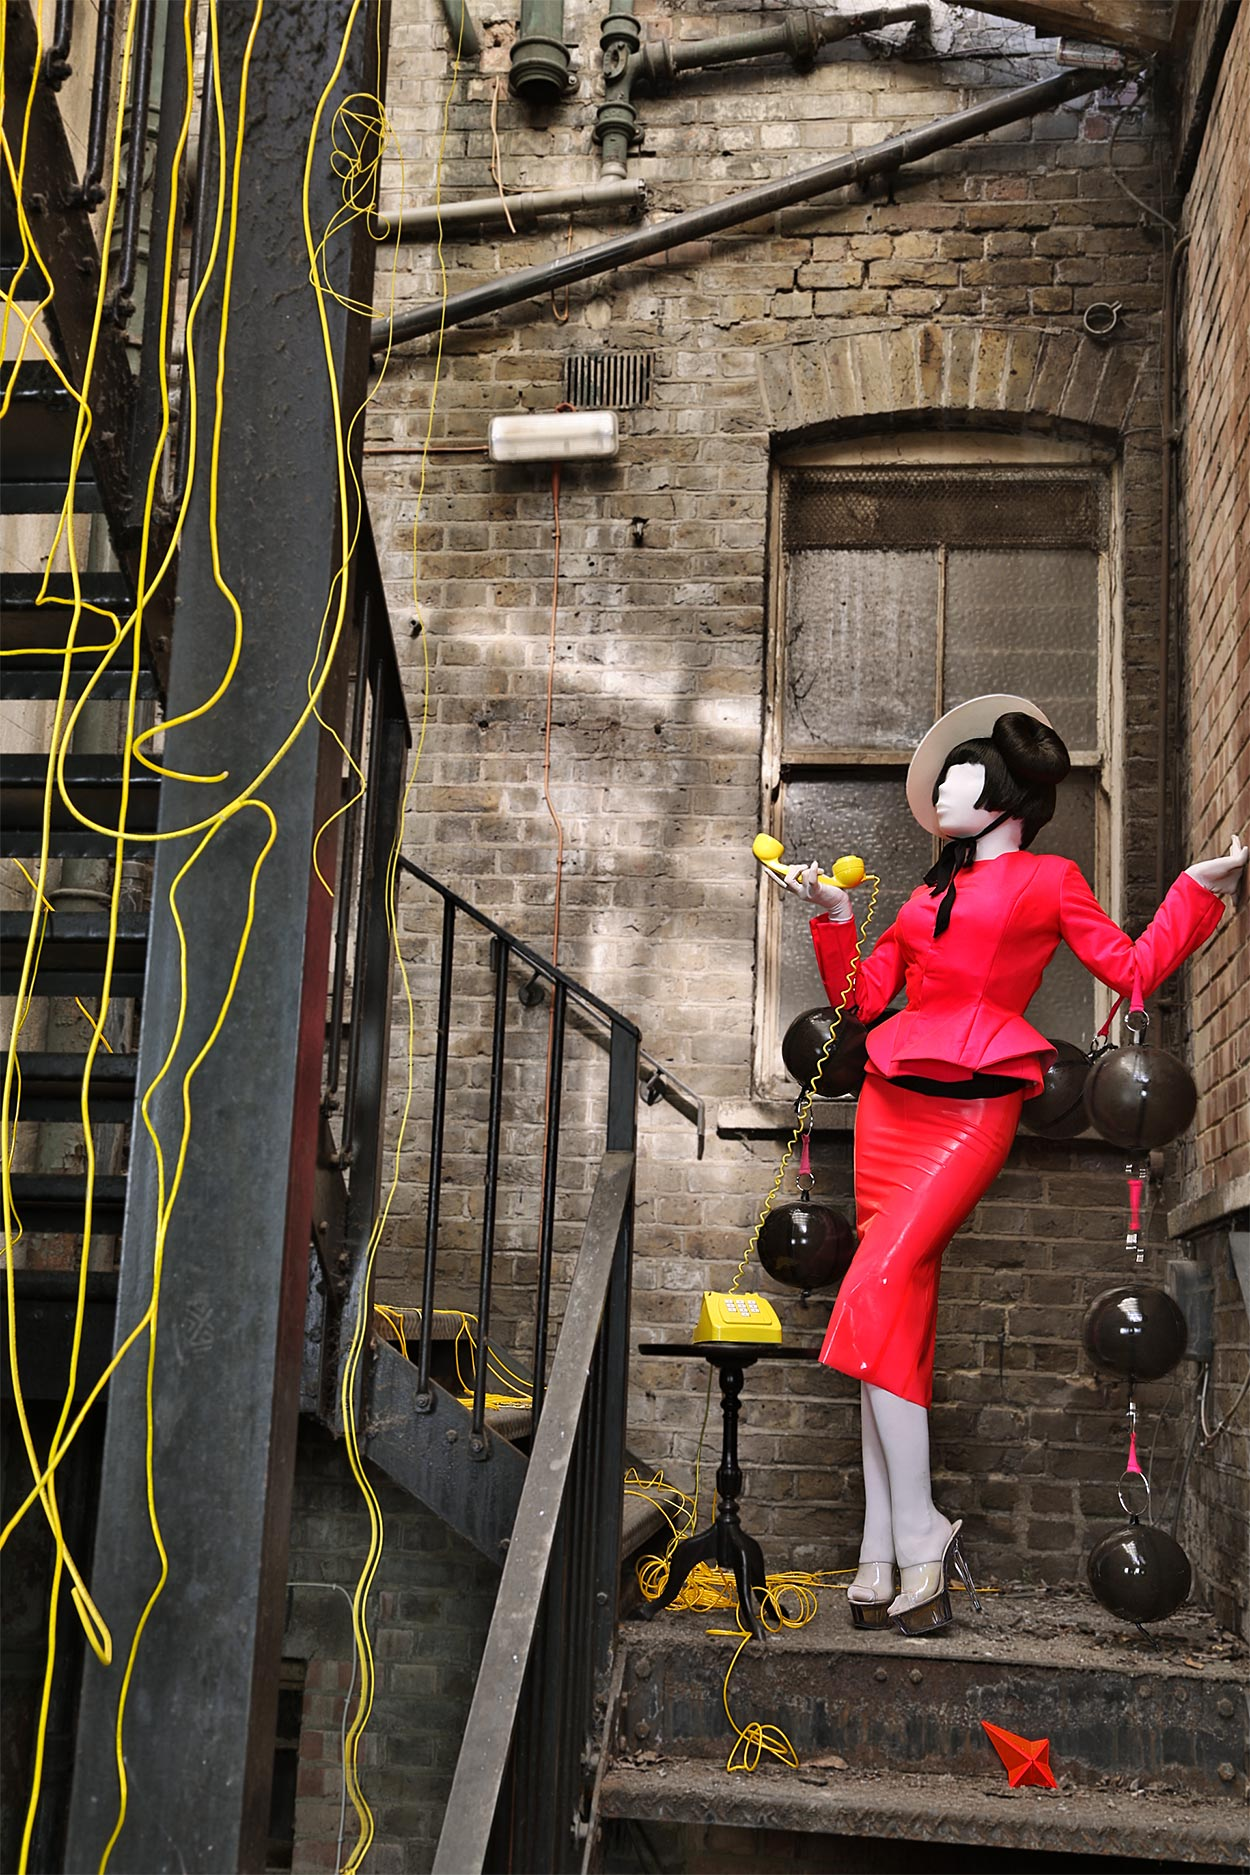 A woman dressed in a hot pink jacket and latex pencil skirt made  by Milkshaken.net, stands on a fire escape staircase speaking on an old yellow dial telephone.